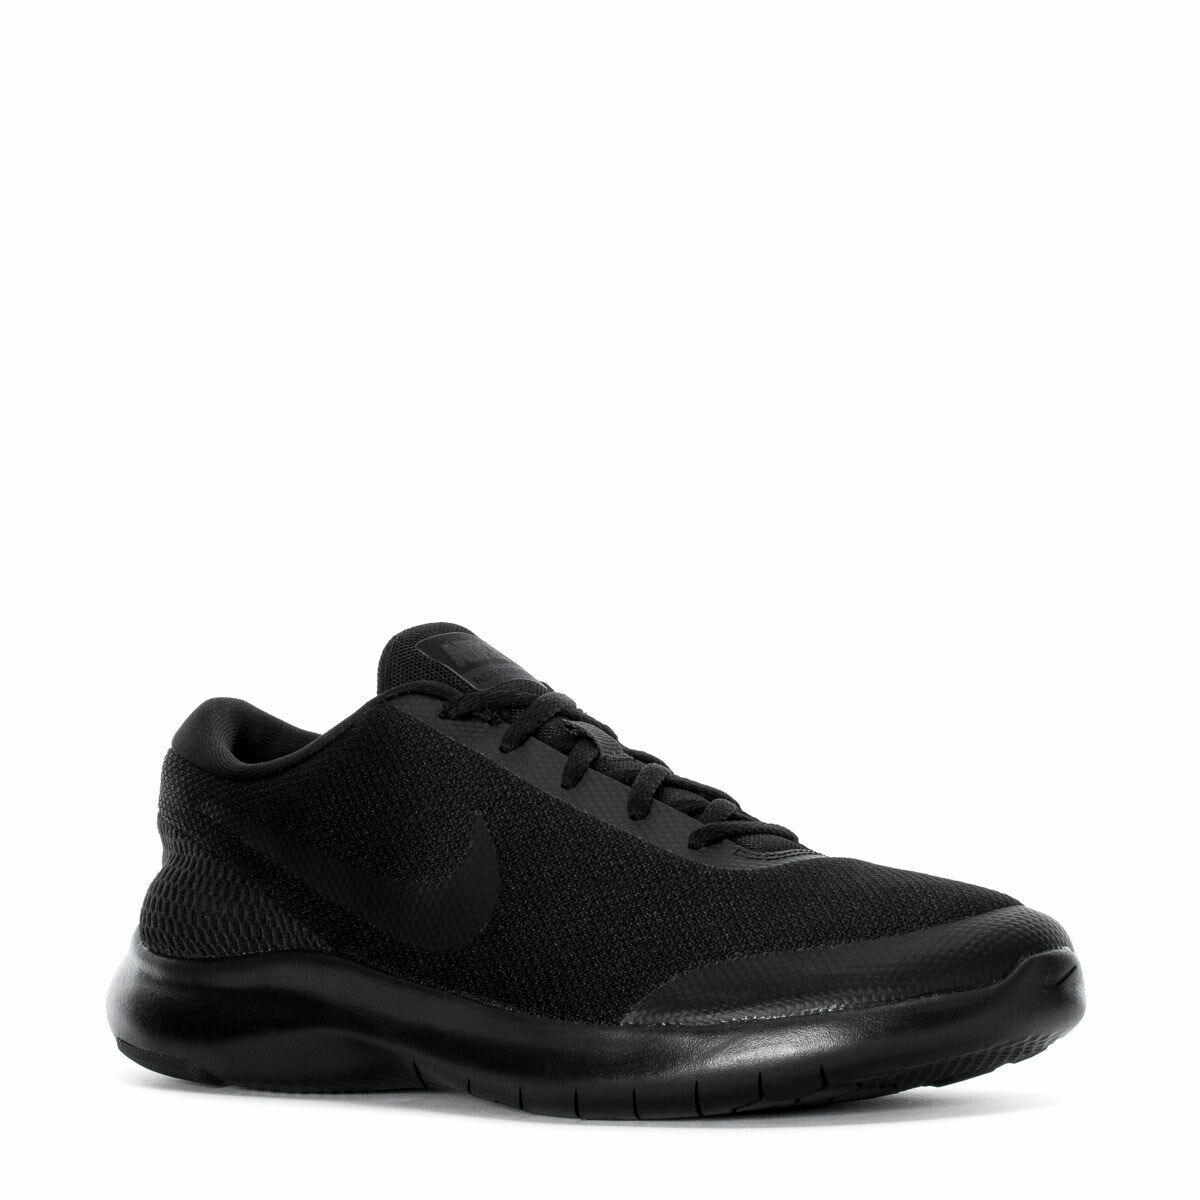 Nike Men's Flex Experience RN 7 Extra Wide 4E Running shoes Black AA7405 002